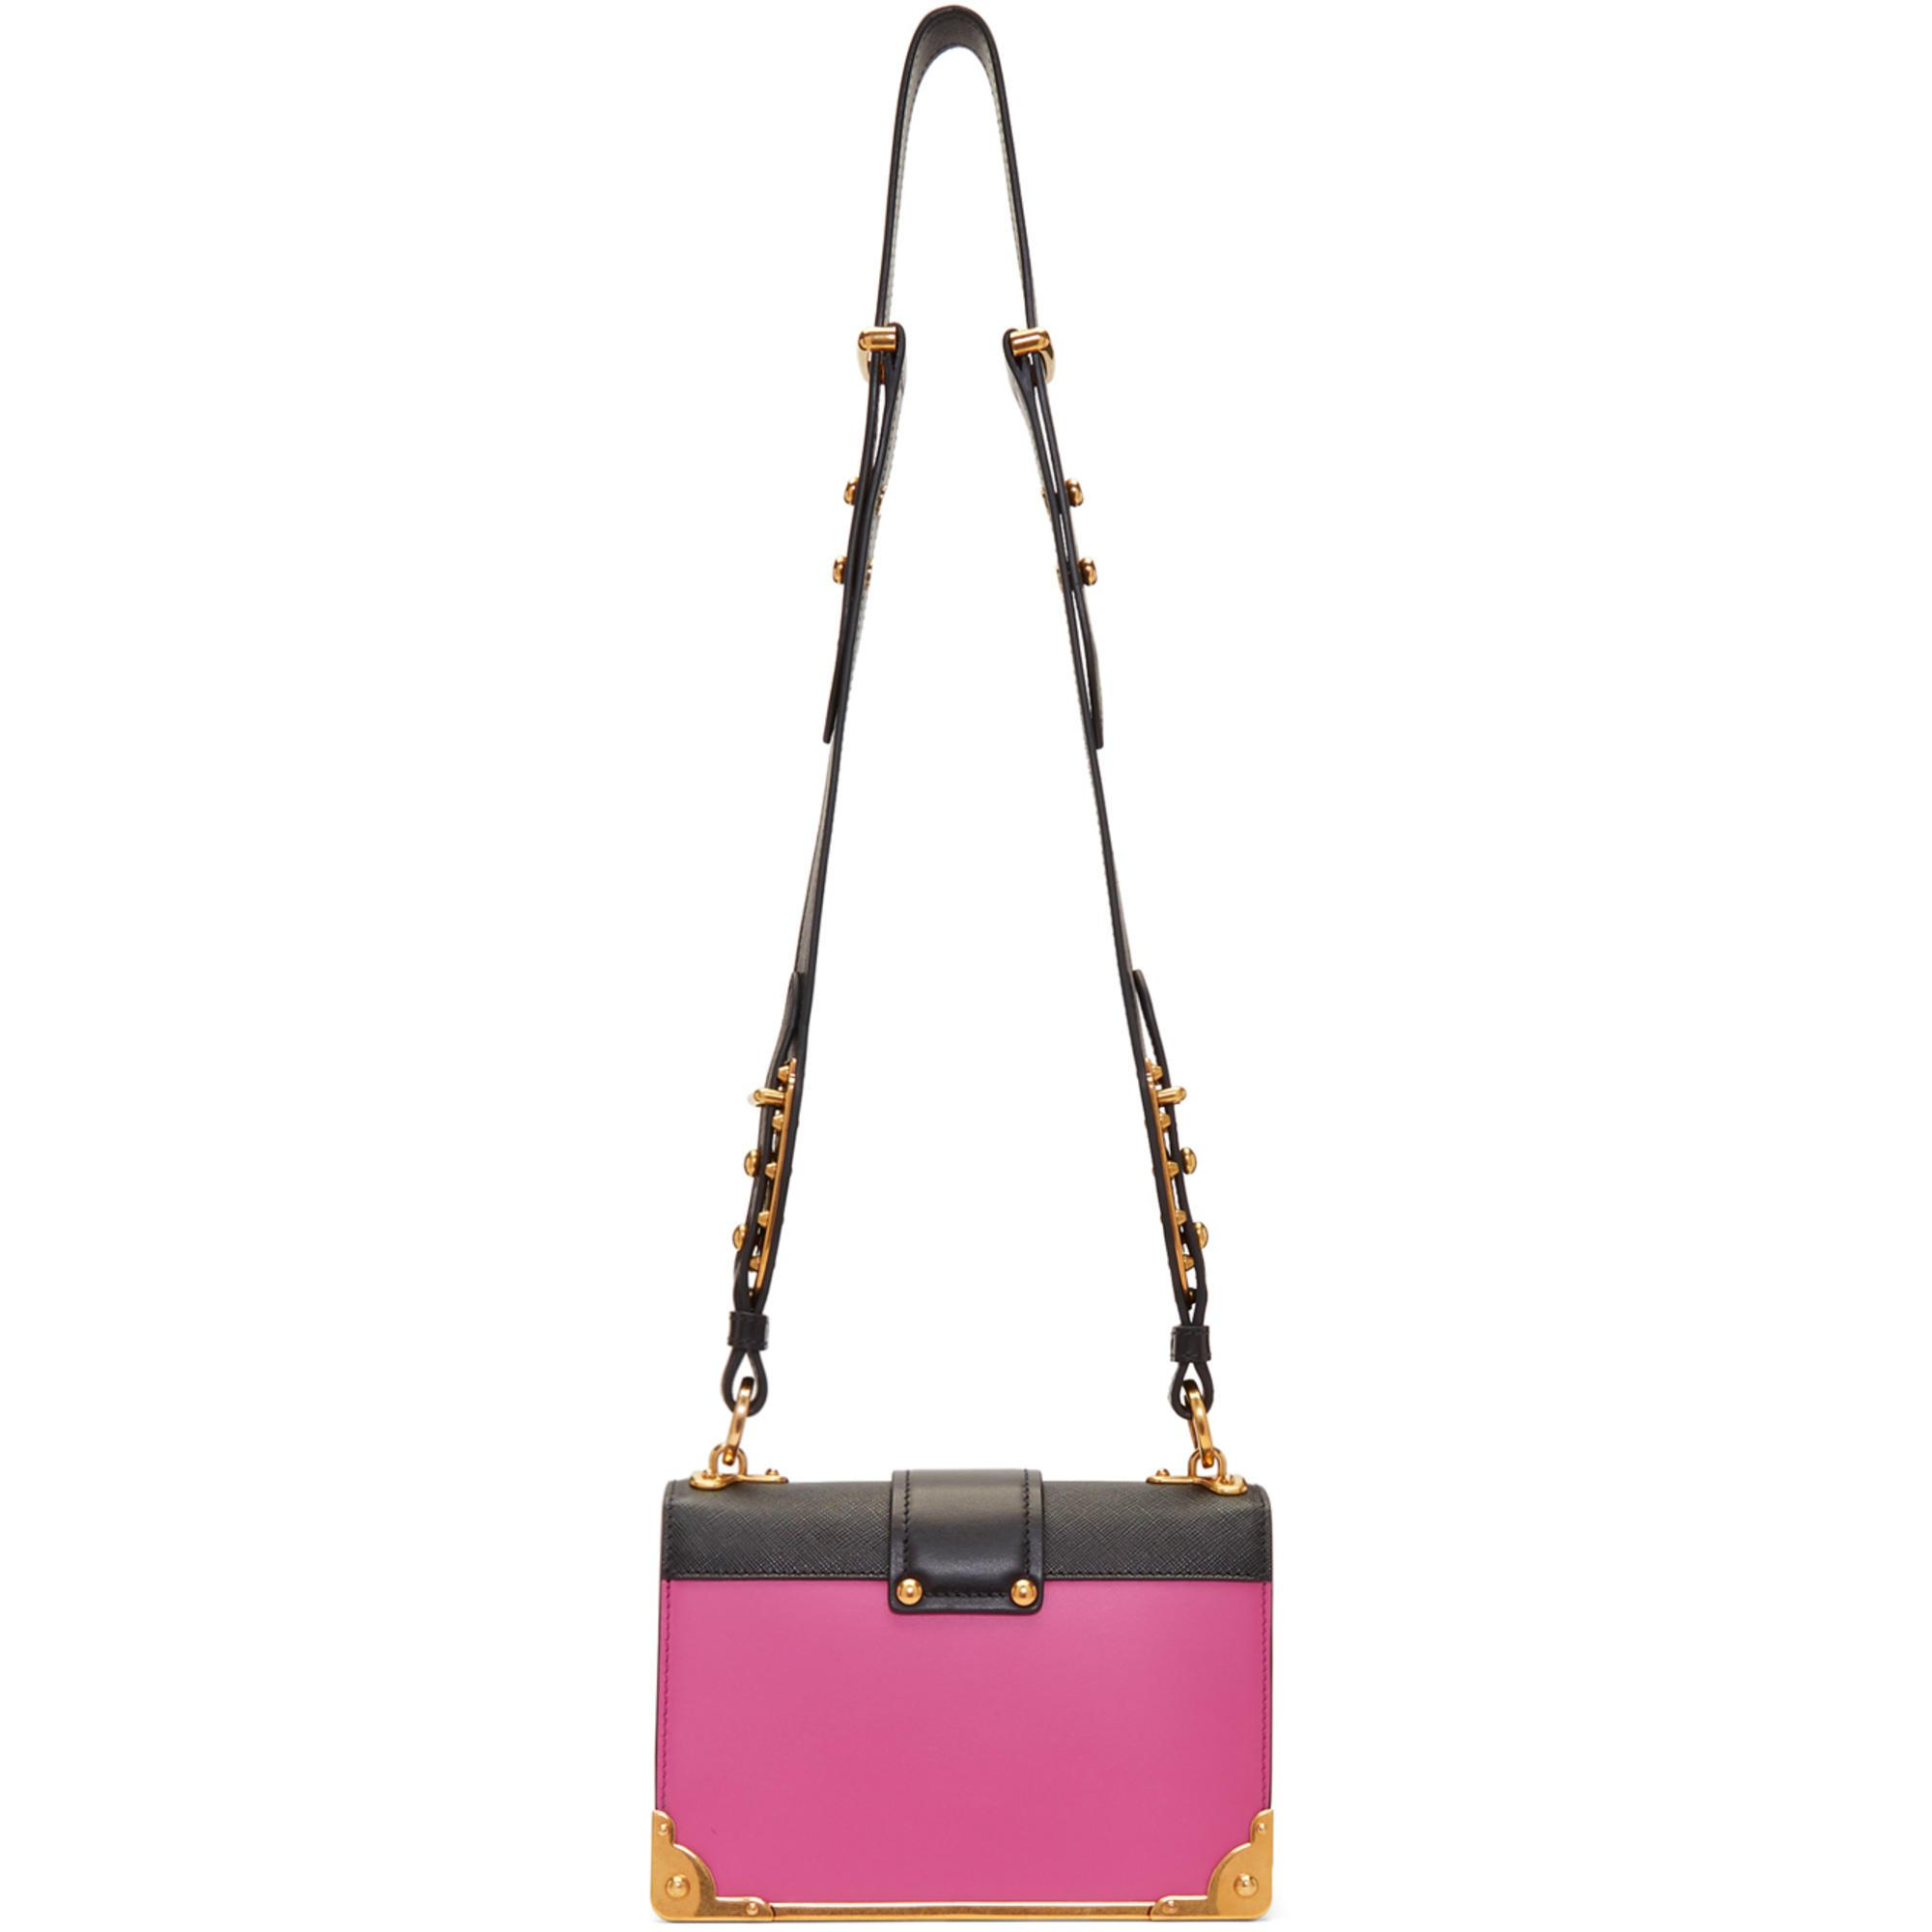 ccaac27f7aa6 Prada Pink And Black Cahier Bag in Pink - Lyst